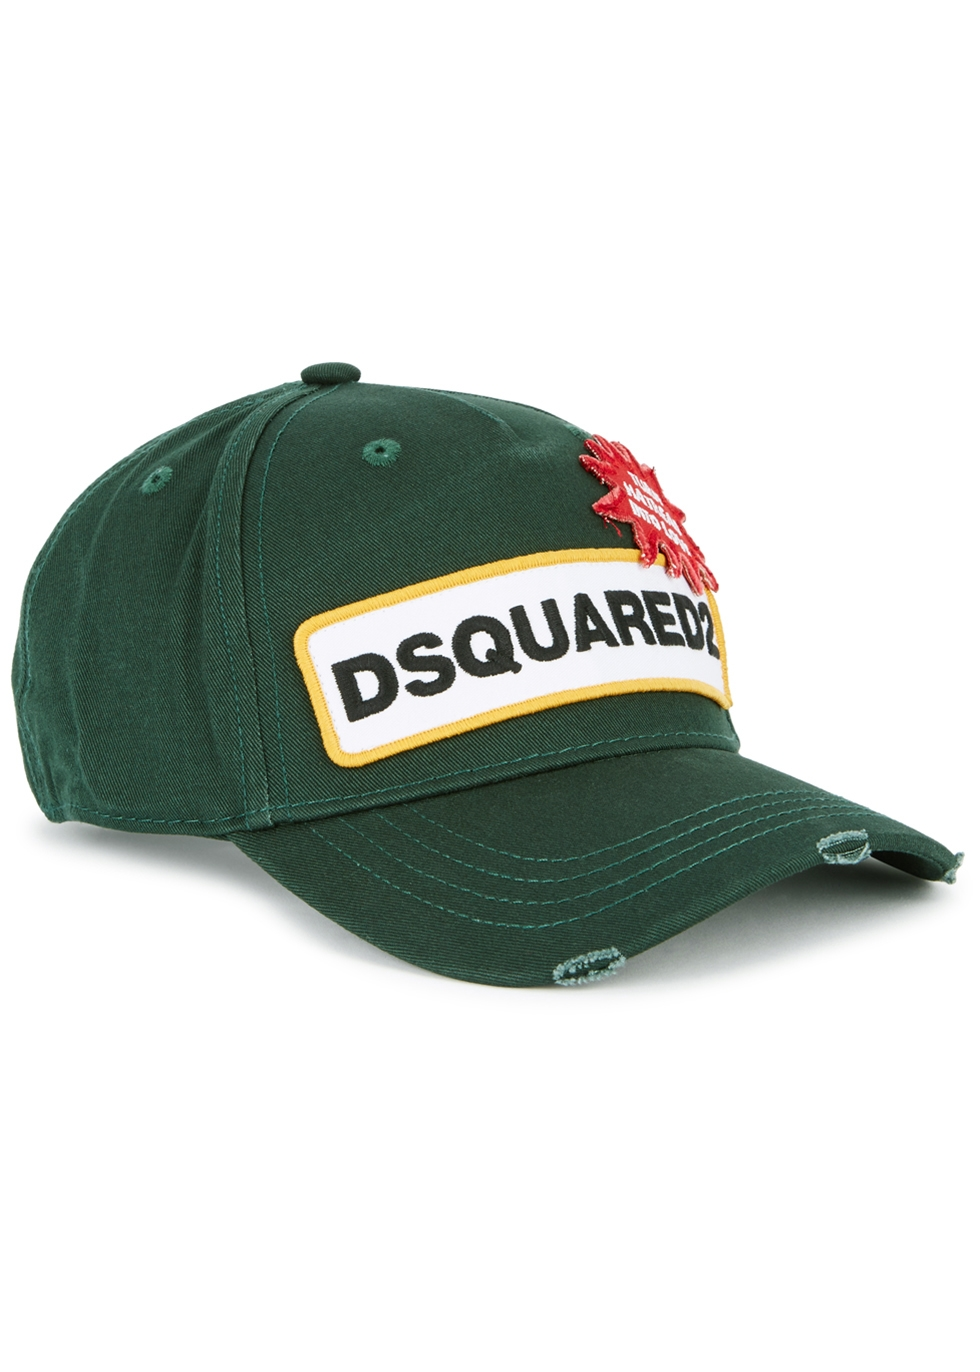 DSQUARED2 GREEN EMBROIDERED TWILL CAP